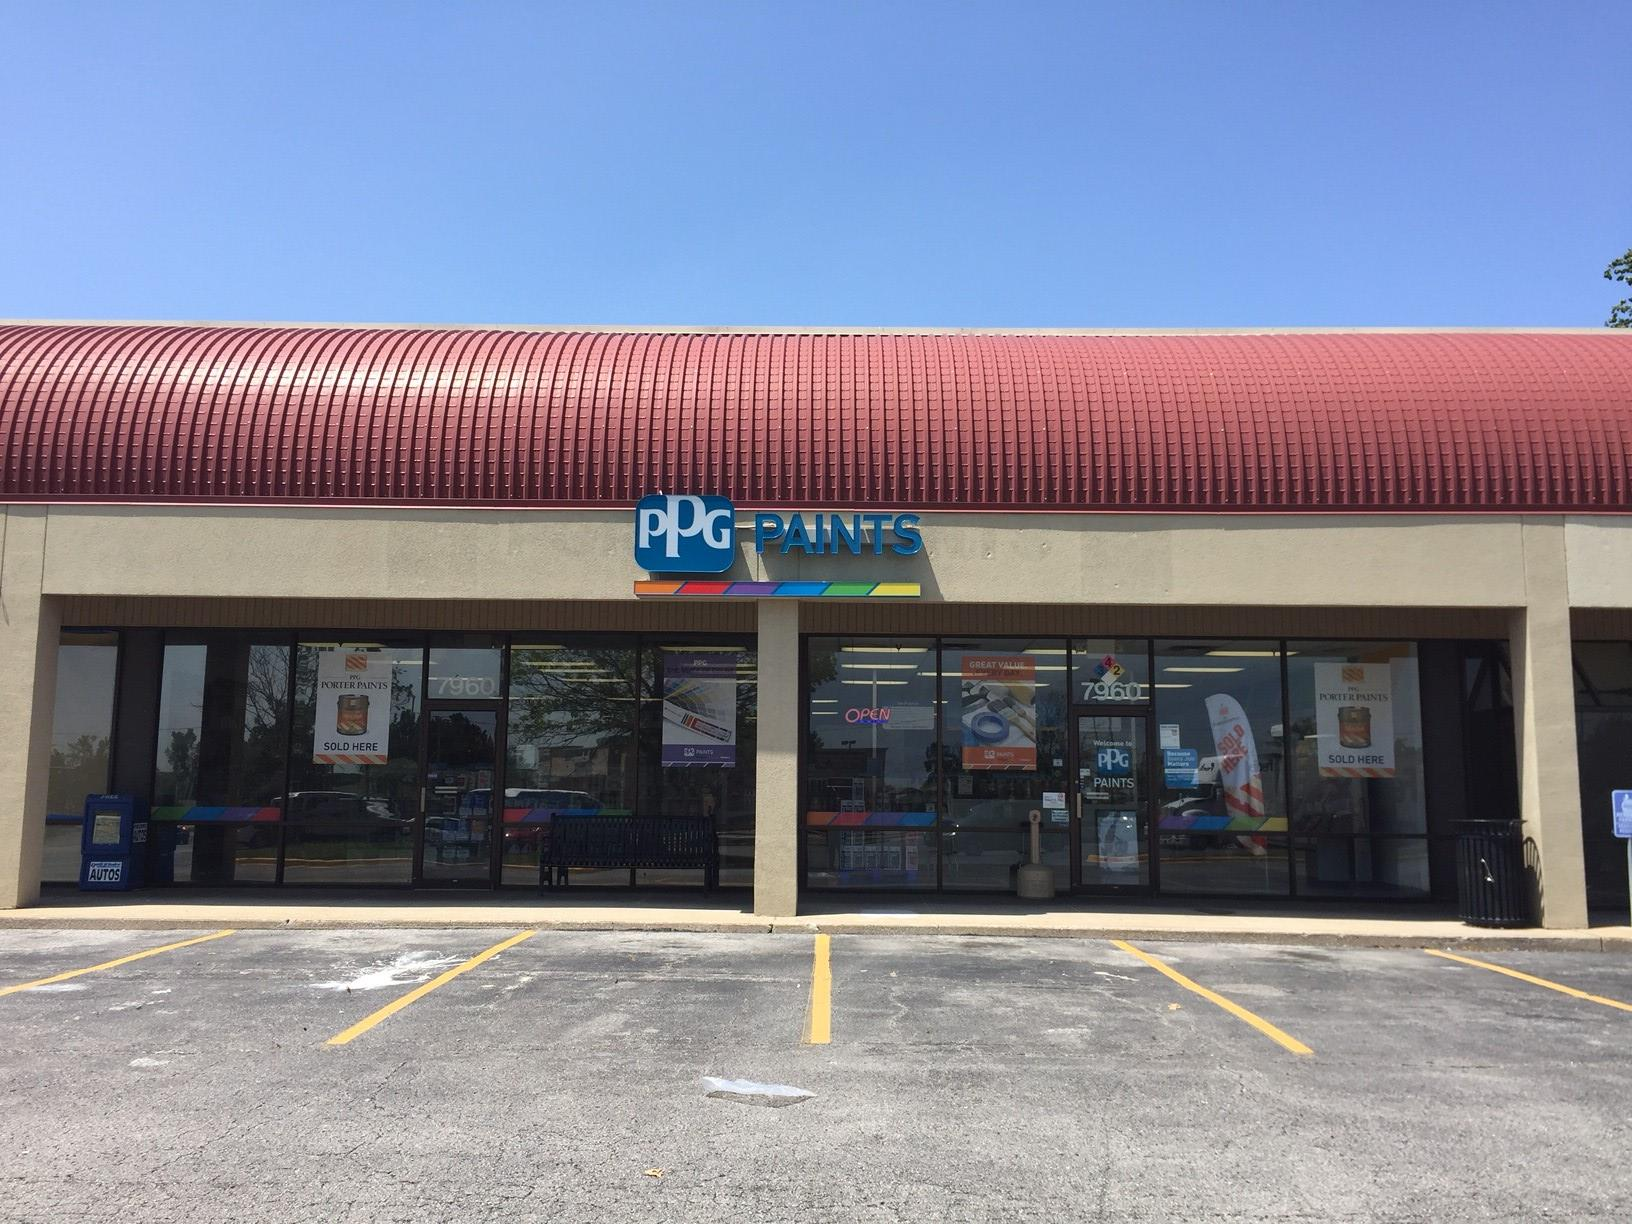 Paint Store Near Me? - We Have A Location Close By!